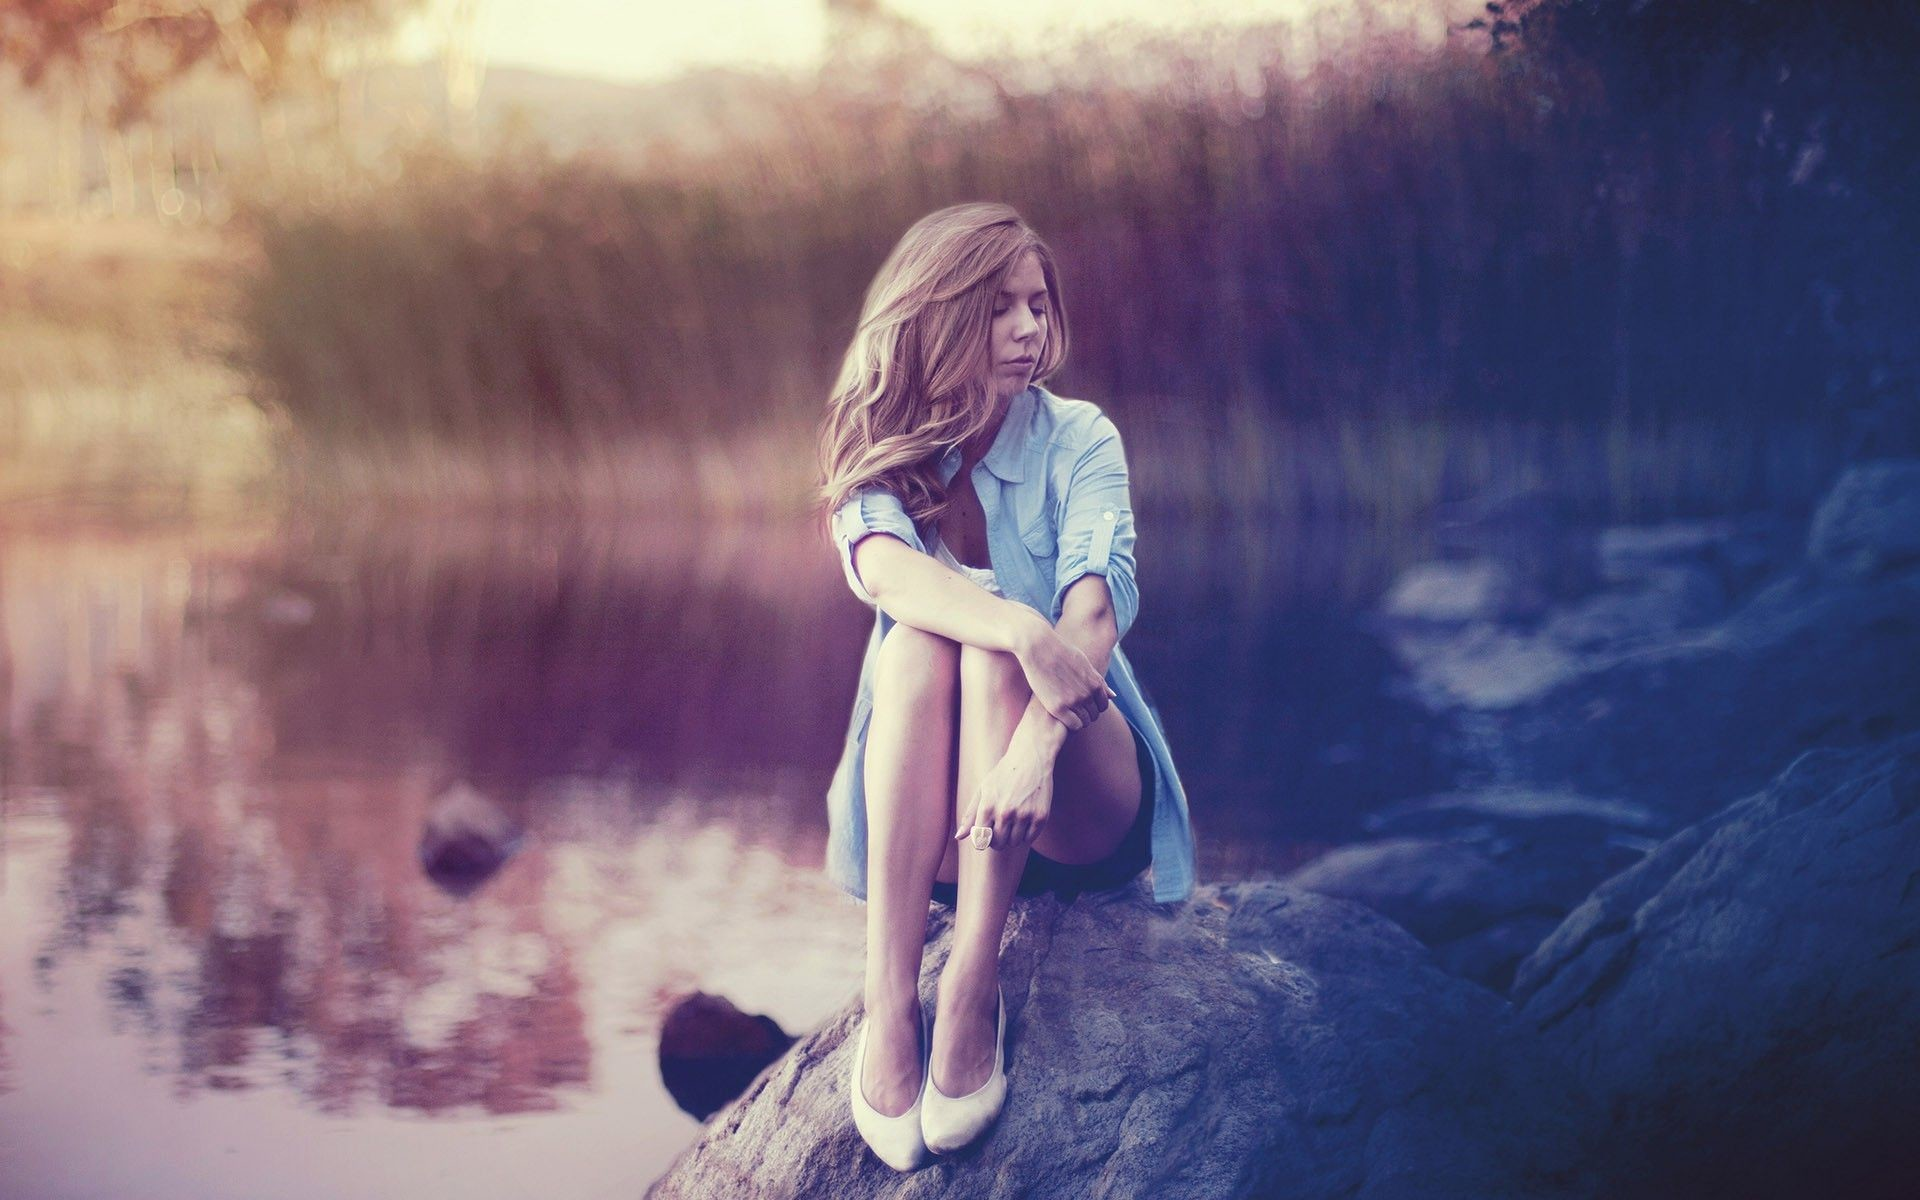 daydreaming by the water girl hd wallpaper